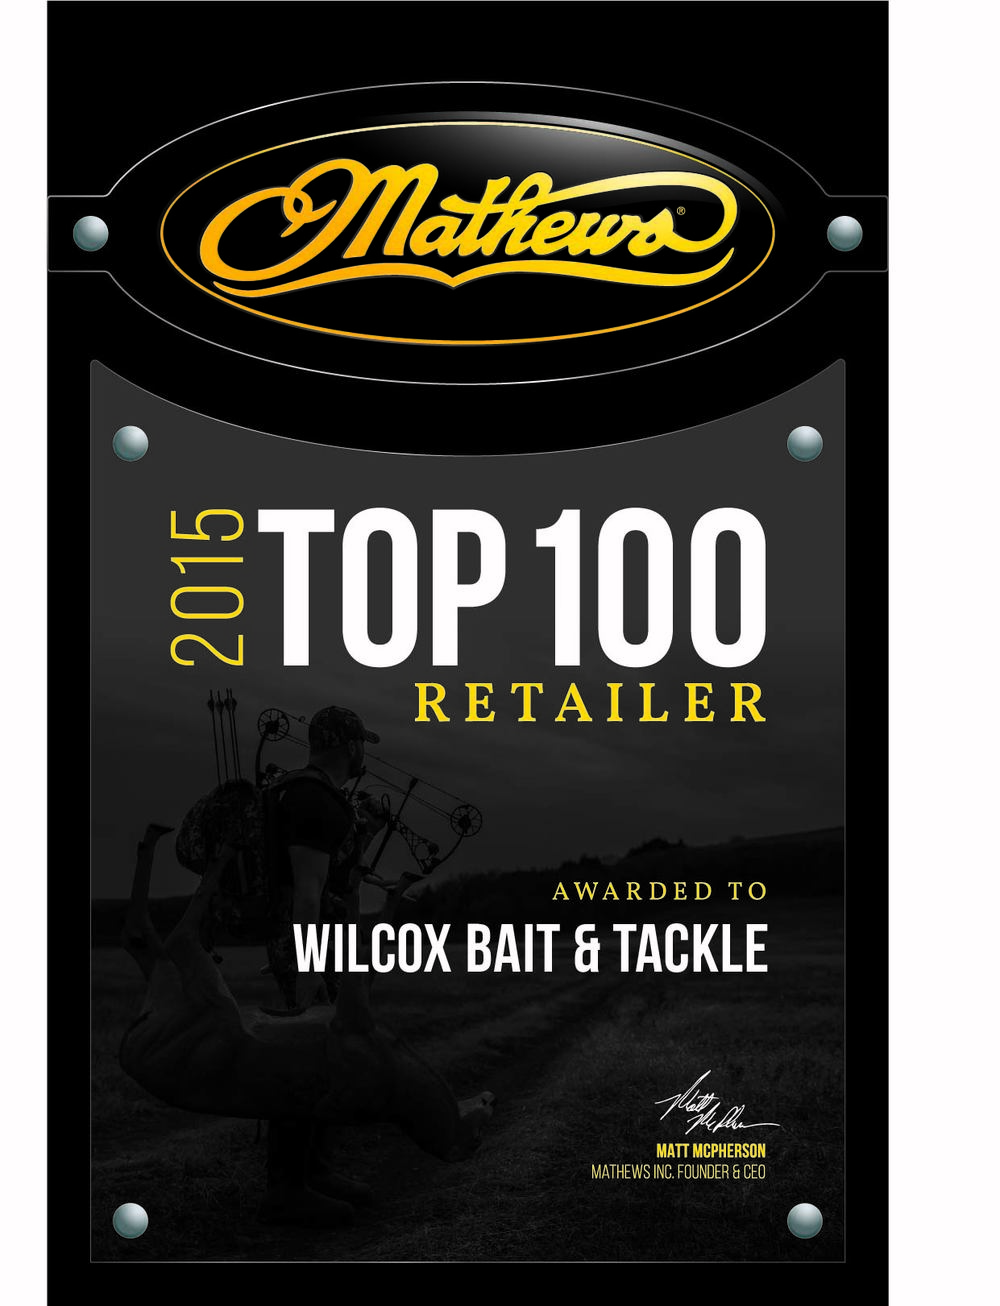 2015-mathews-top100-wilcox-1.jpg